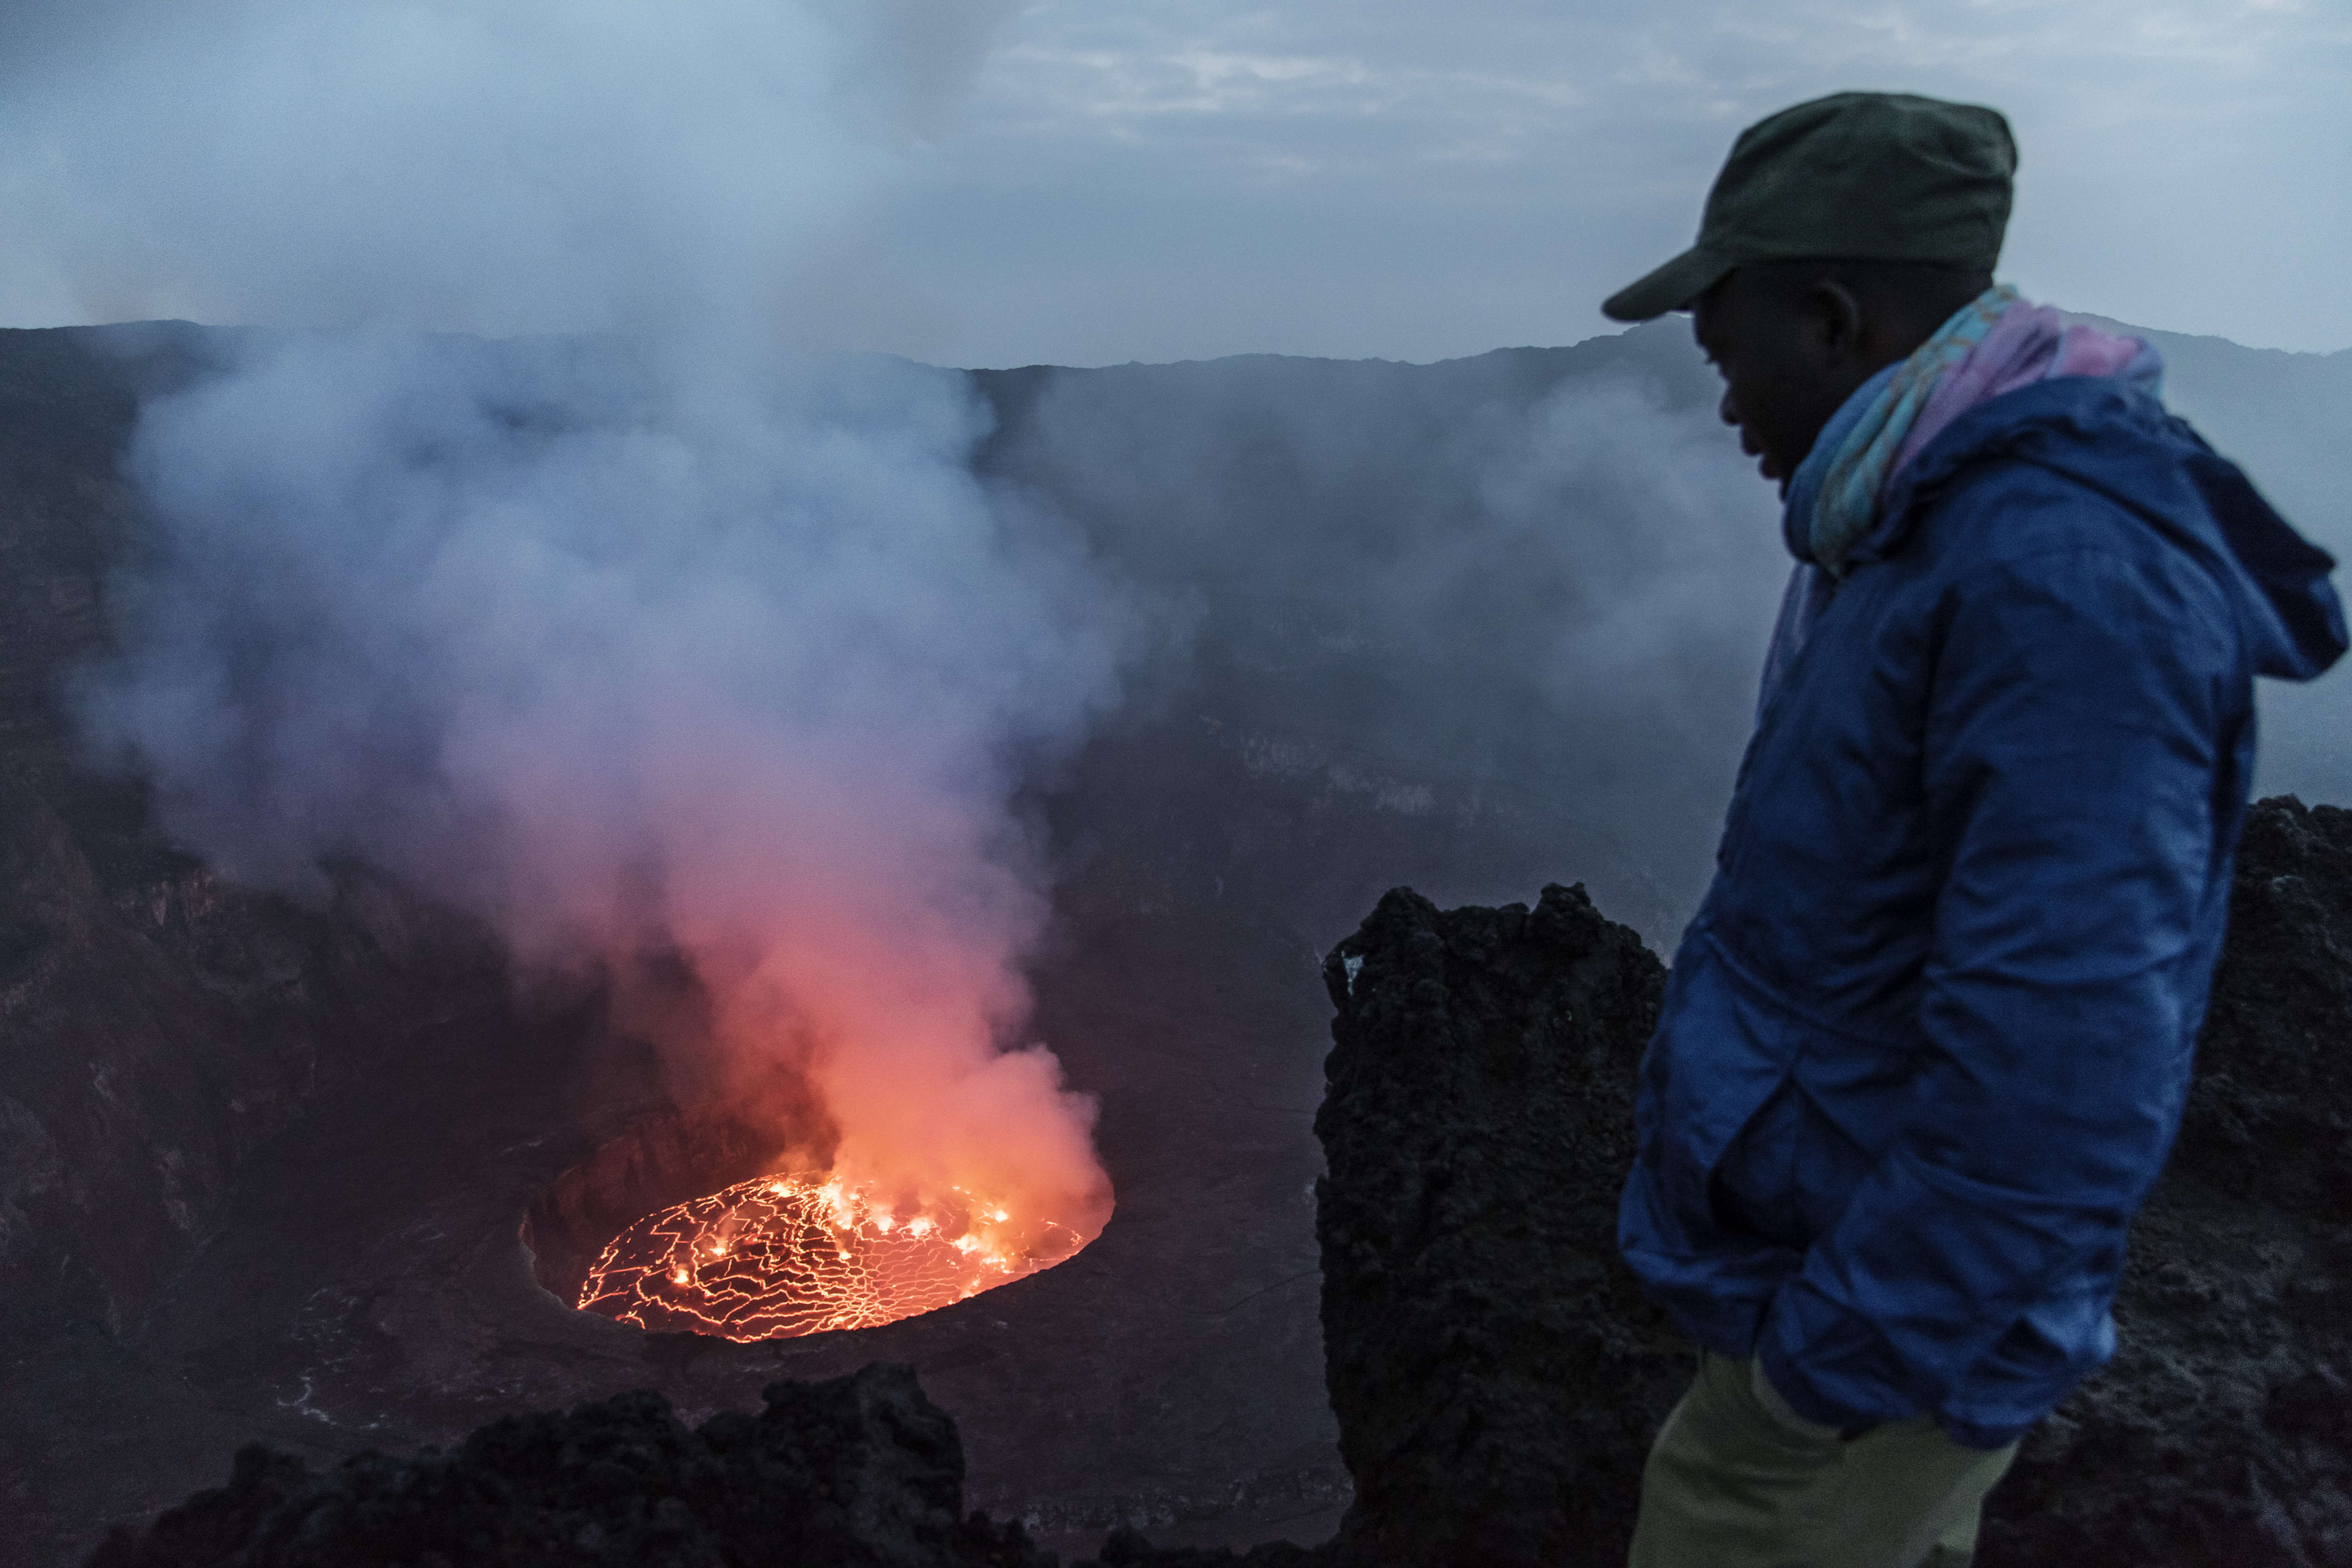 A ranger looks at the main crater of Mount Nyiragongo. Photo by Thierry Falise/LightRocket via Getty Images.